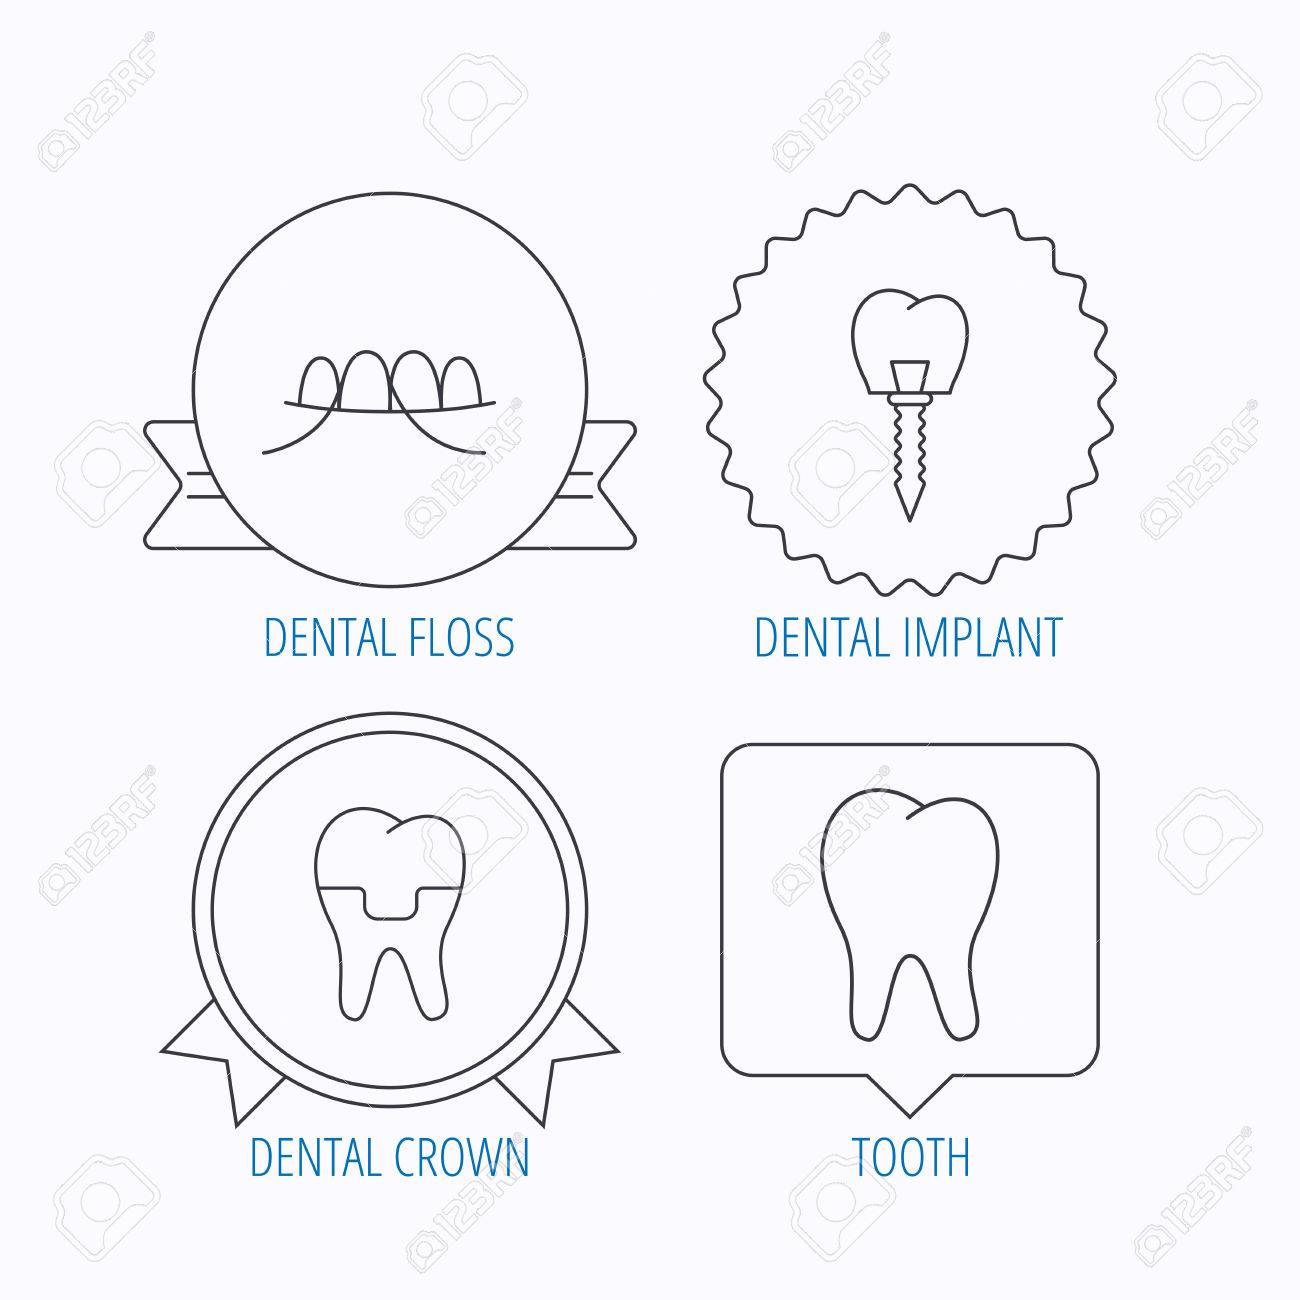 hight resolution of dental implant floss and tooth icons dental crown linear sign award medal